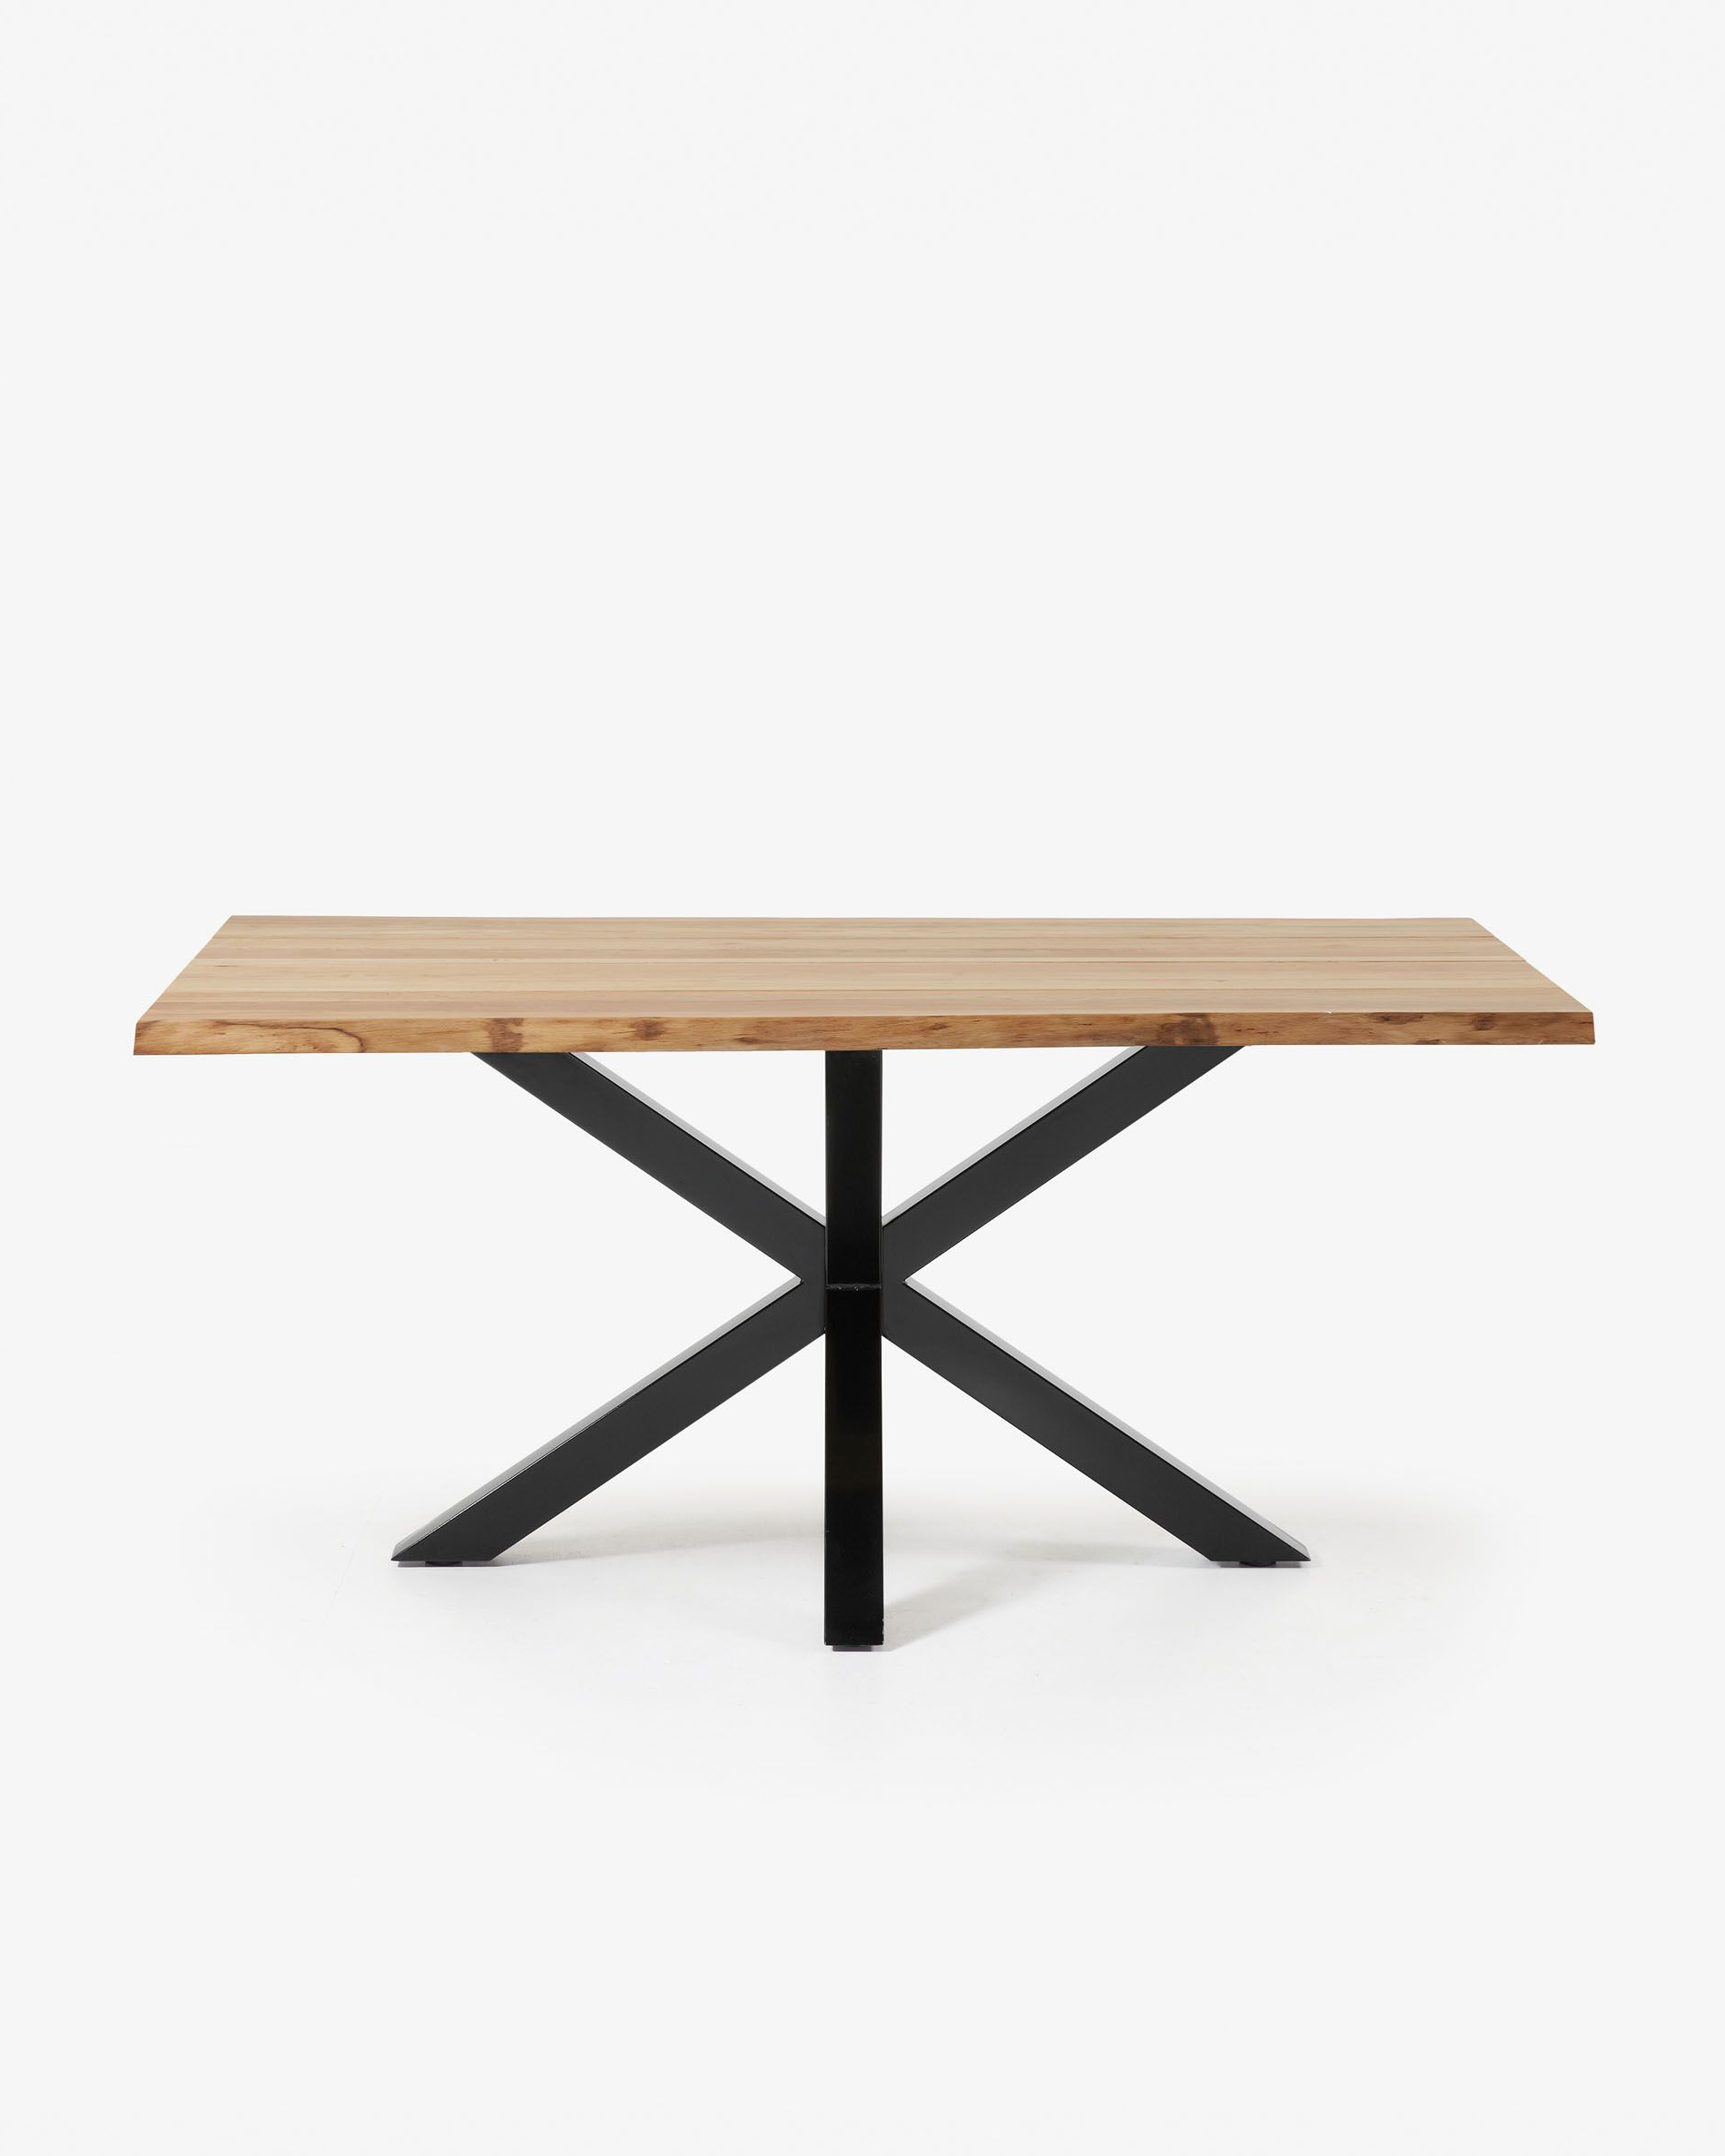 Kave Home Intended For Dining Tables With Black U Legs (View 7 of 25)